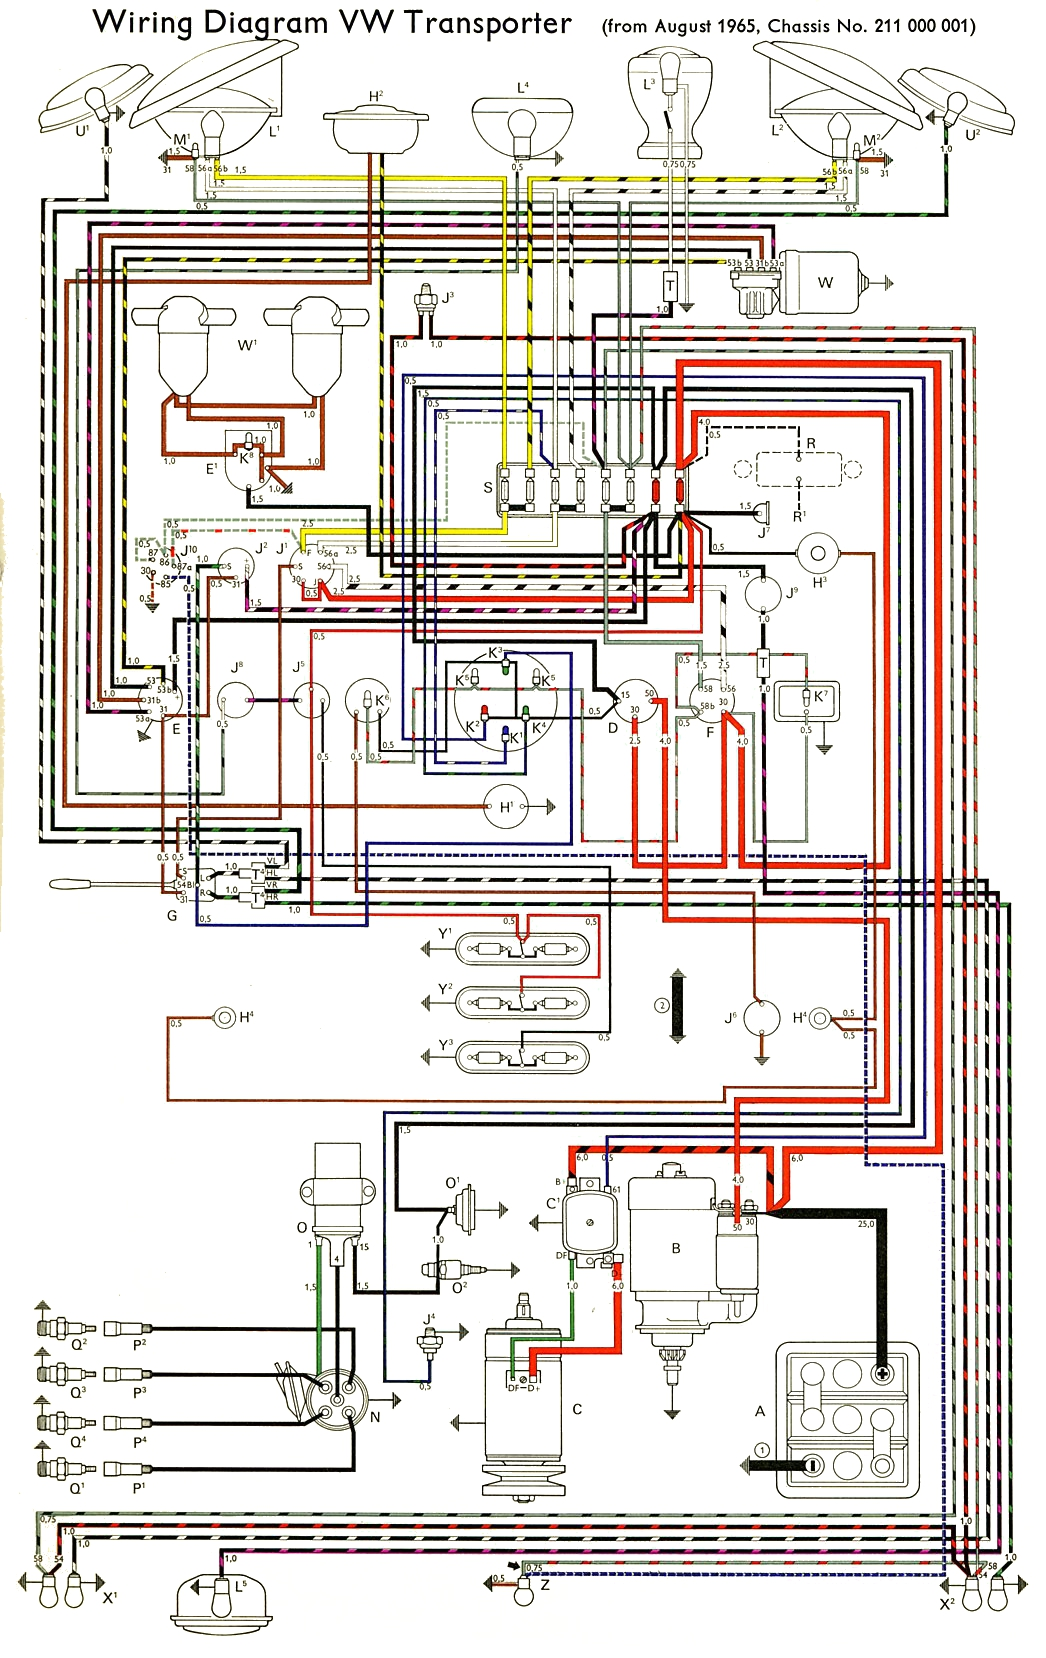 bus_66 electrical wiring diagrams beetle 1971 electrical wiring vw golf 3 electrical wiring diagram at webbmarketing.co